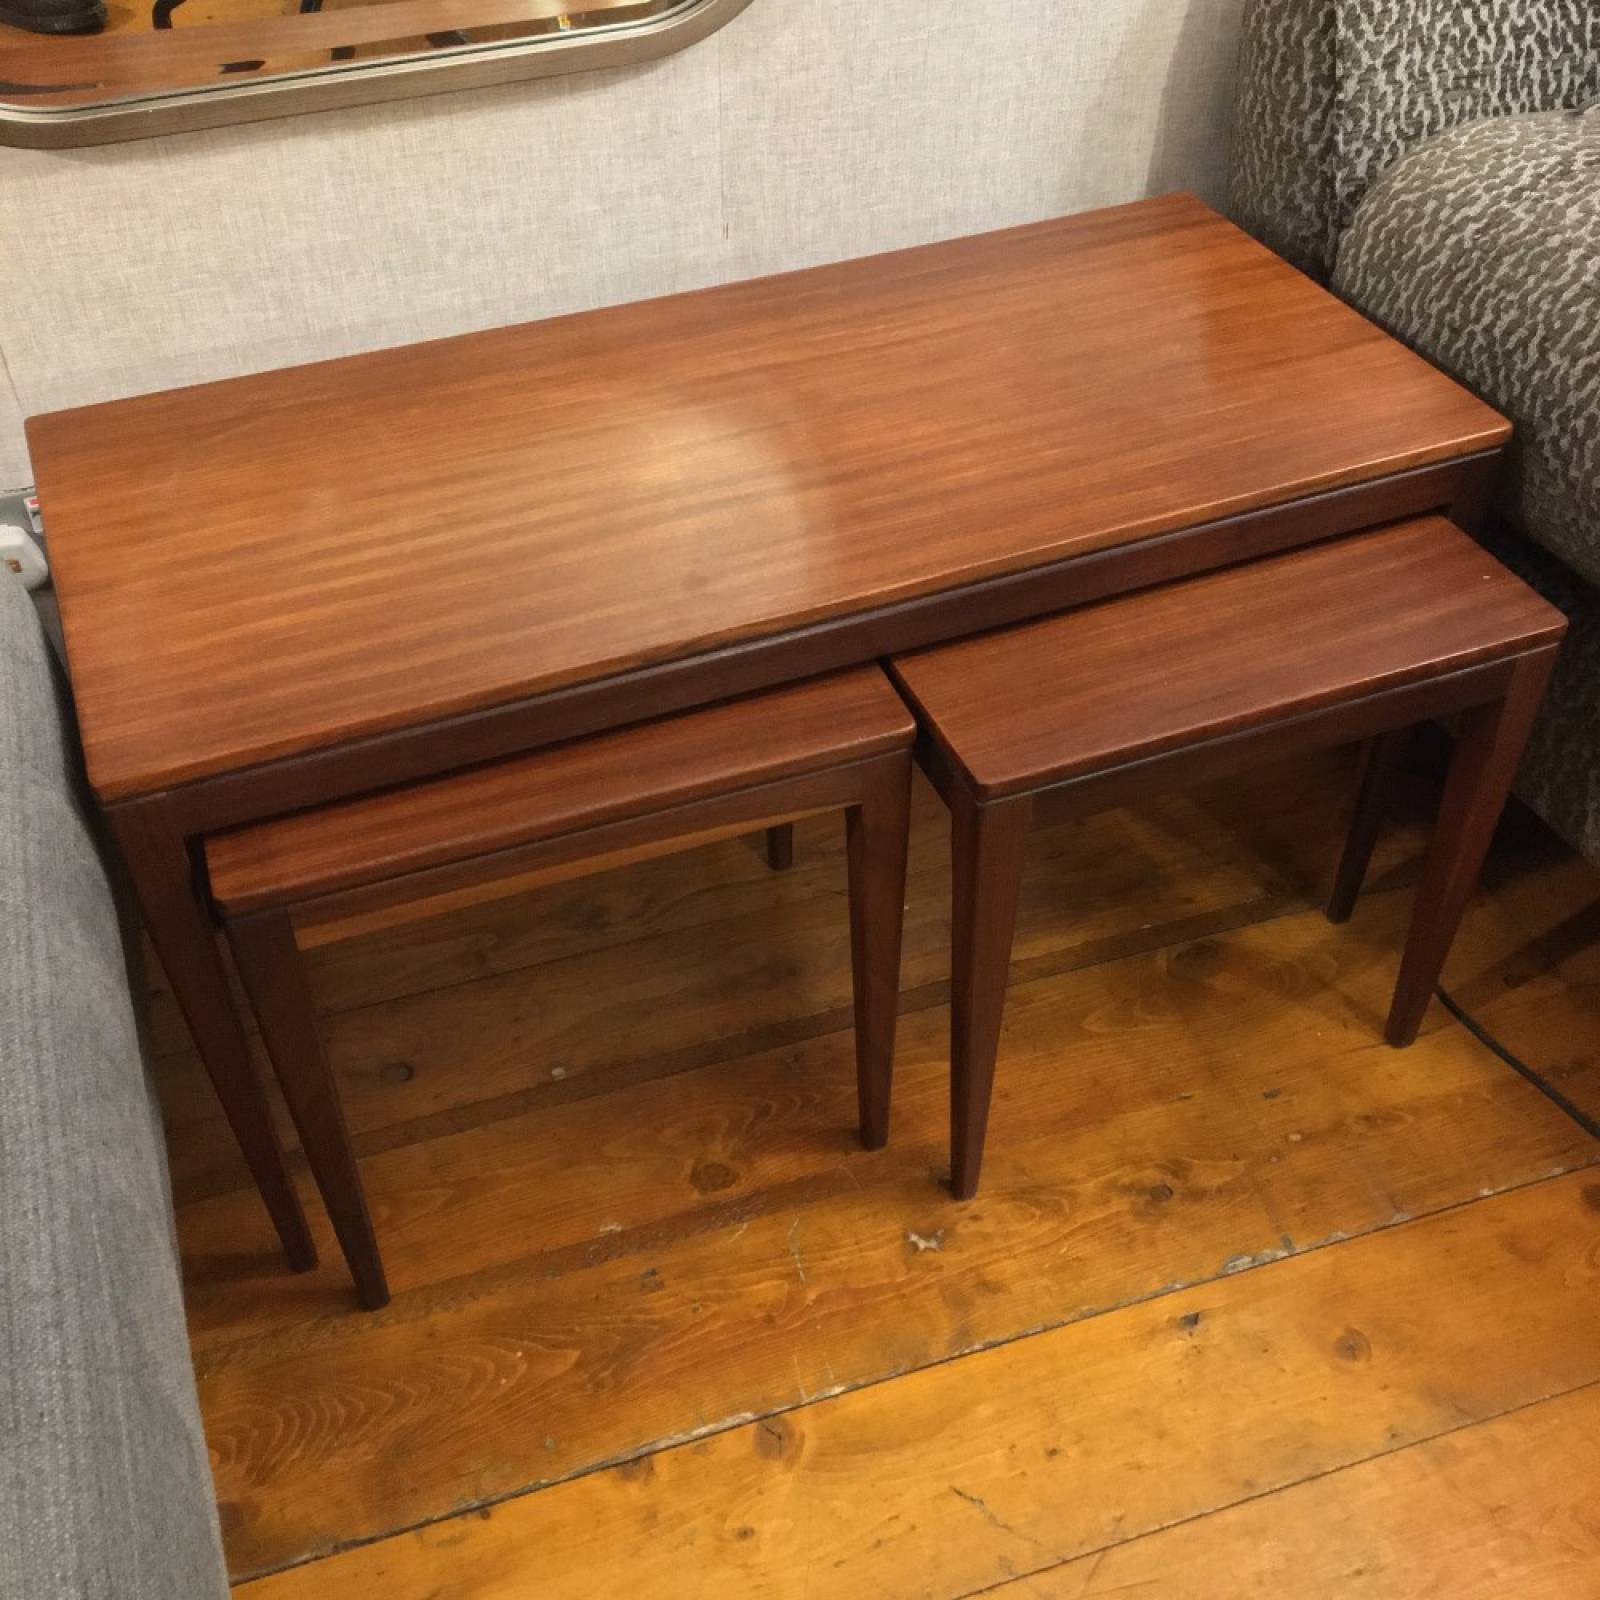 1970s Afromosia Nest of Tables, One Rectangular and Two Square